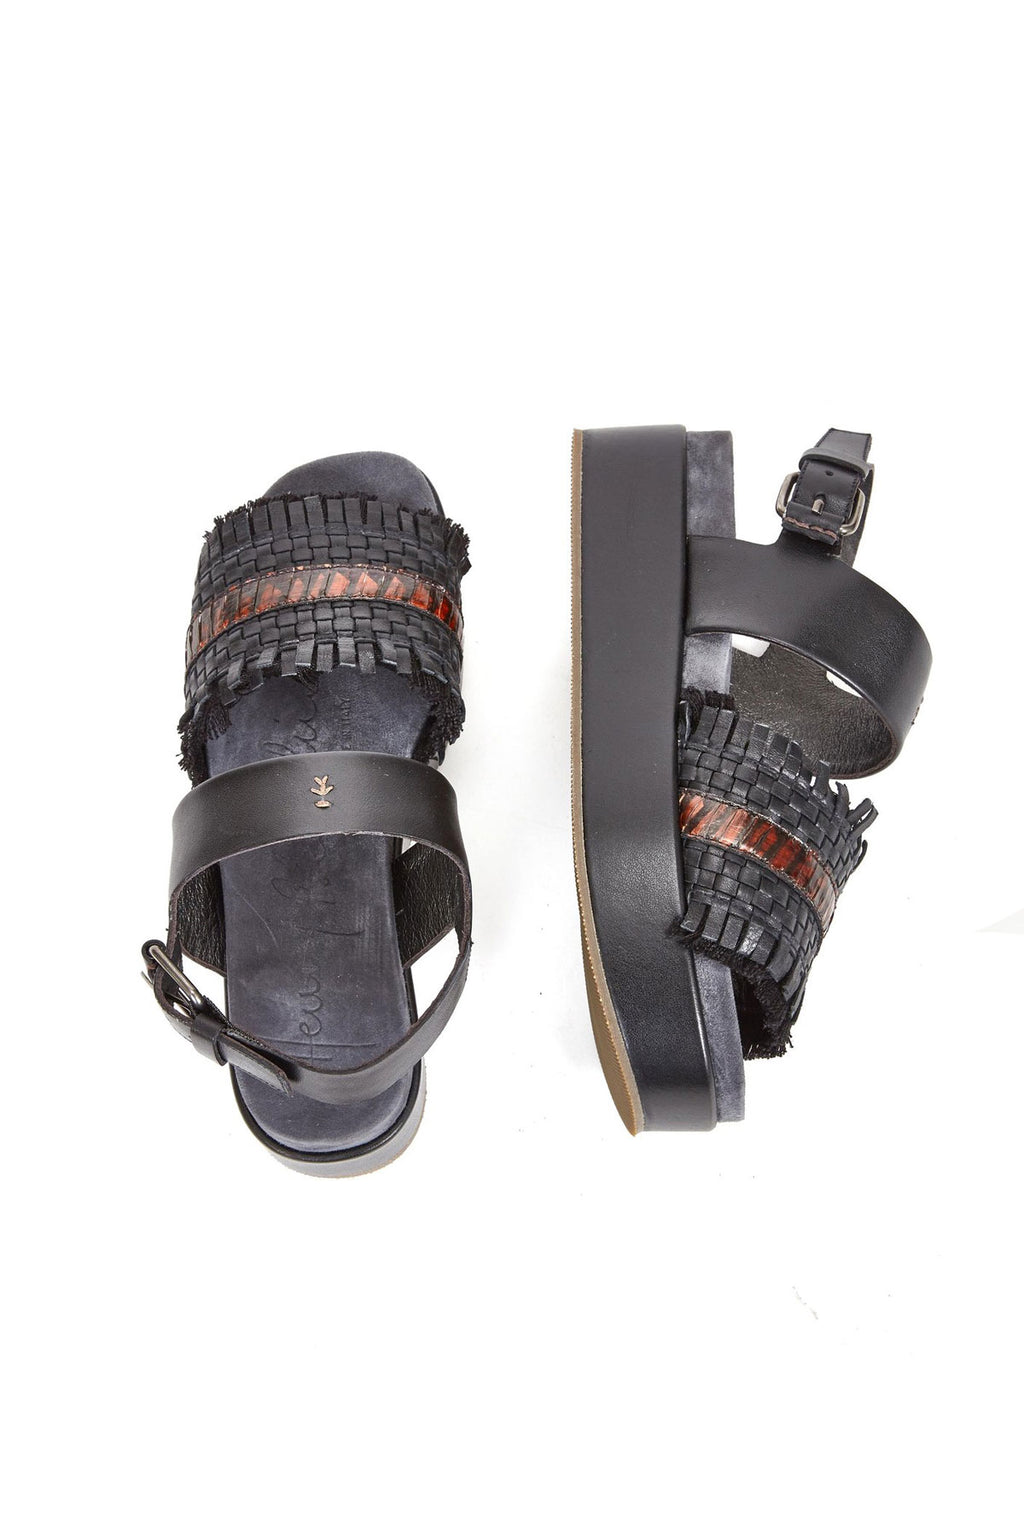 Henry Beguelin Platform Sandal Black & Brown